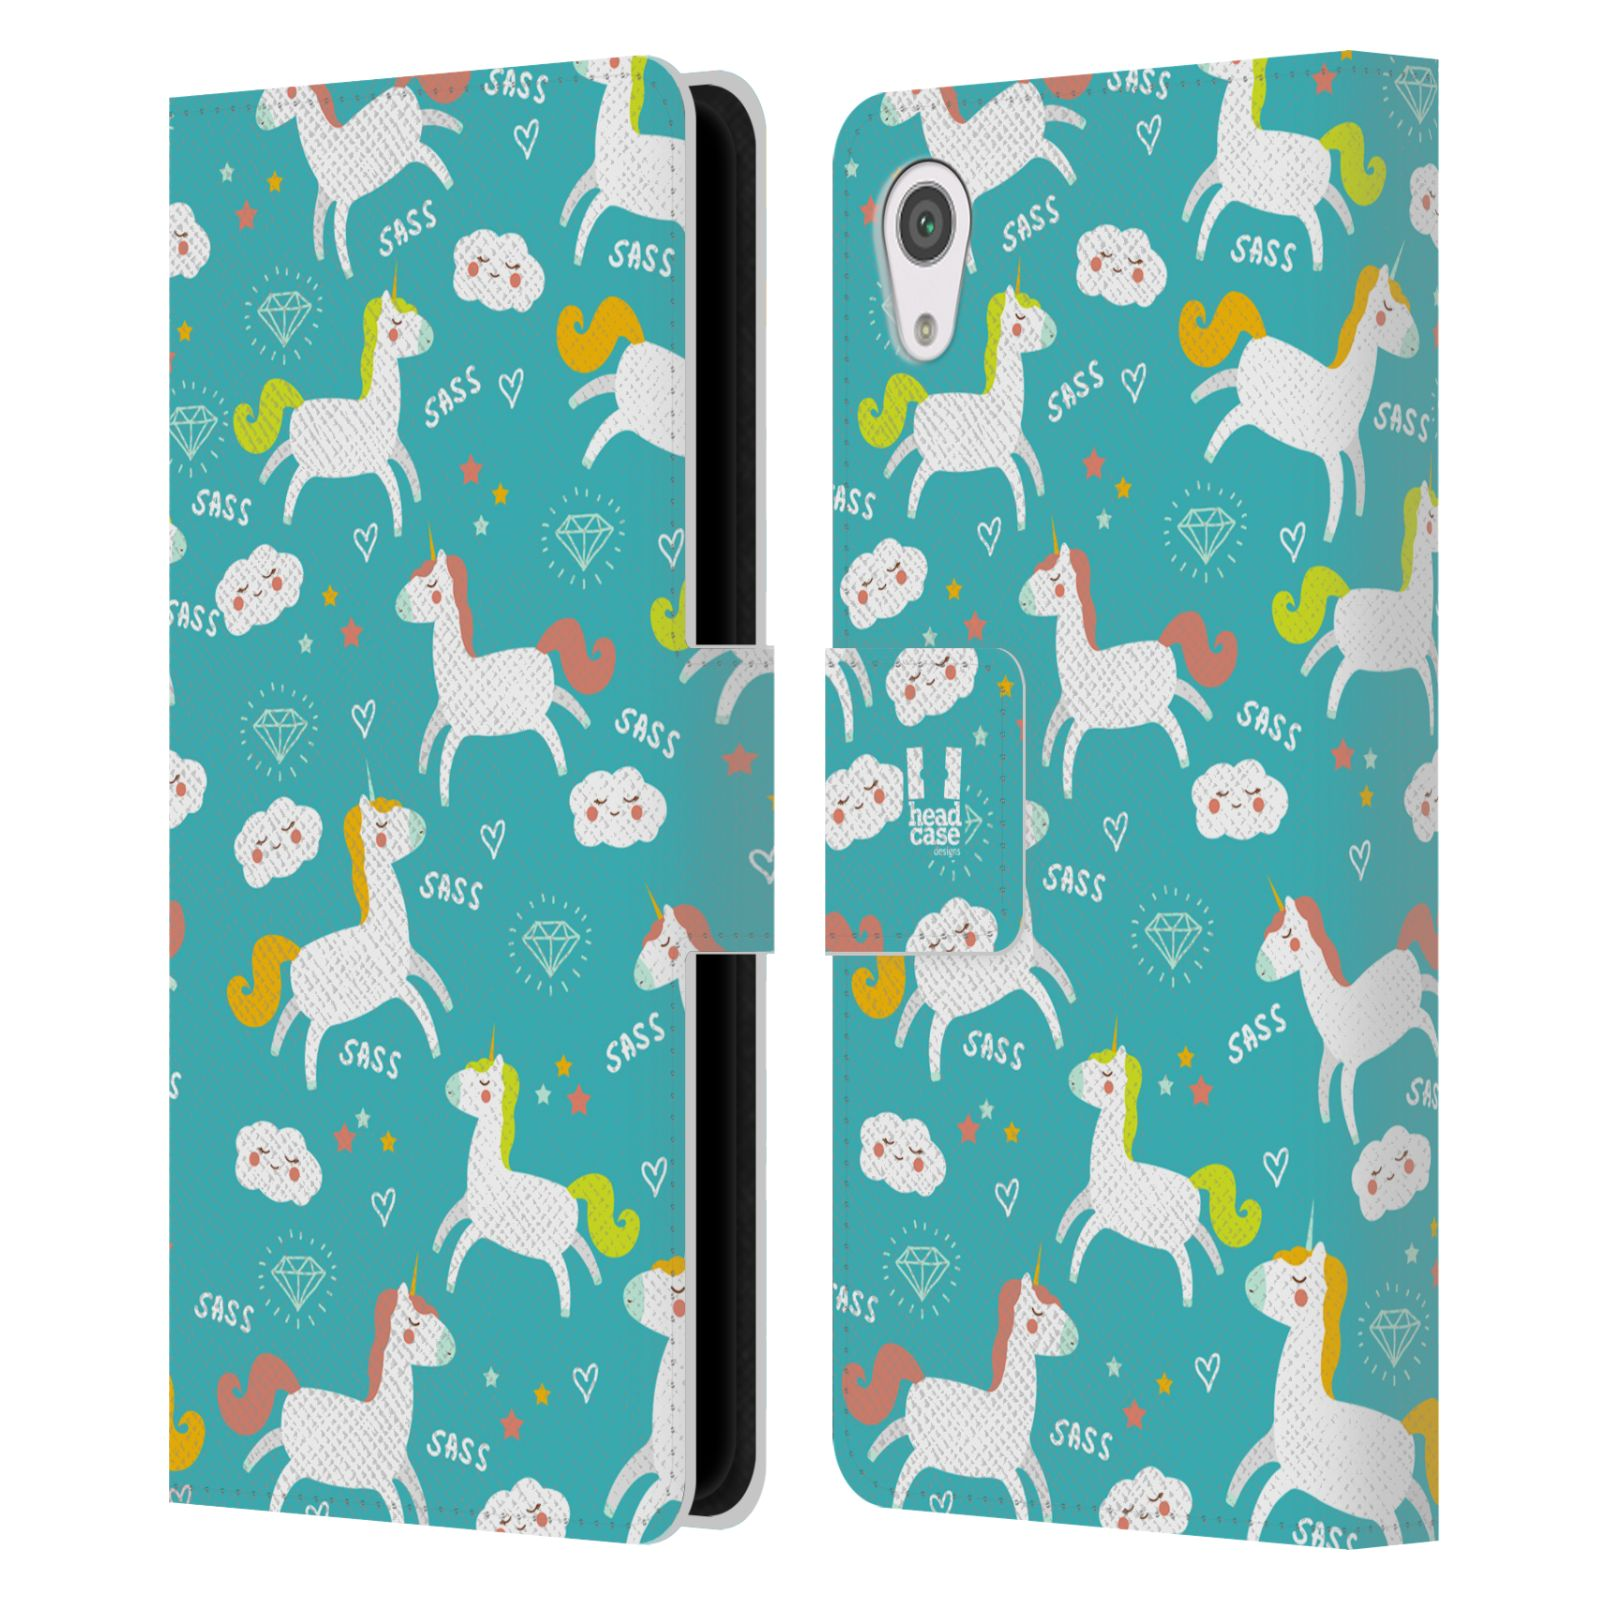 HEAD-CASE-DESIGNS-SASSY-UNICORNS-LEATHER-BOOK-WALLET-CASE-FOR-SONY-PHONES-1